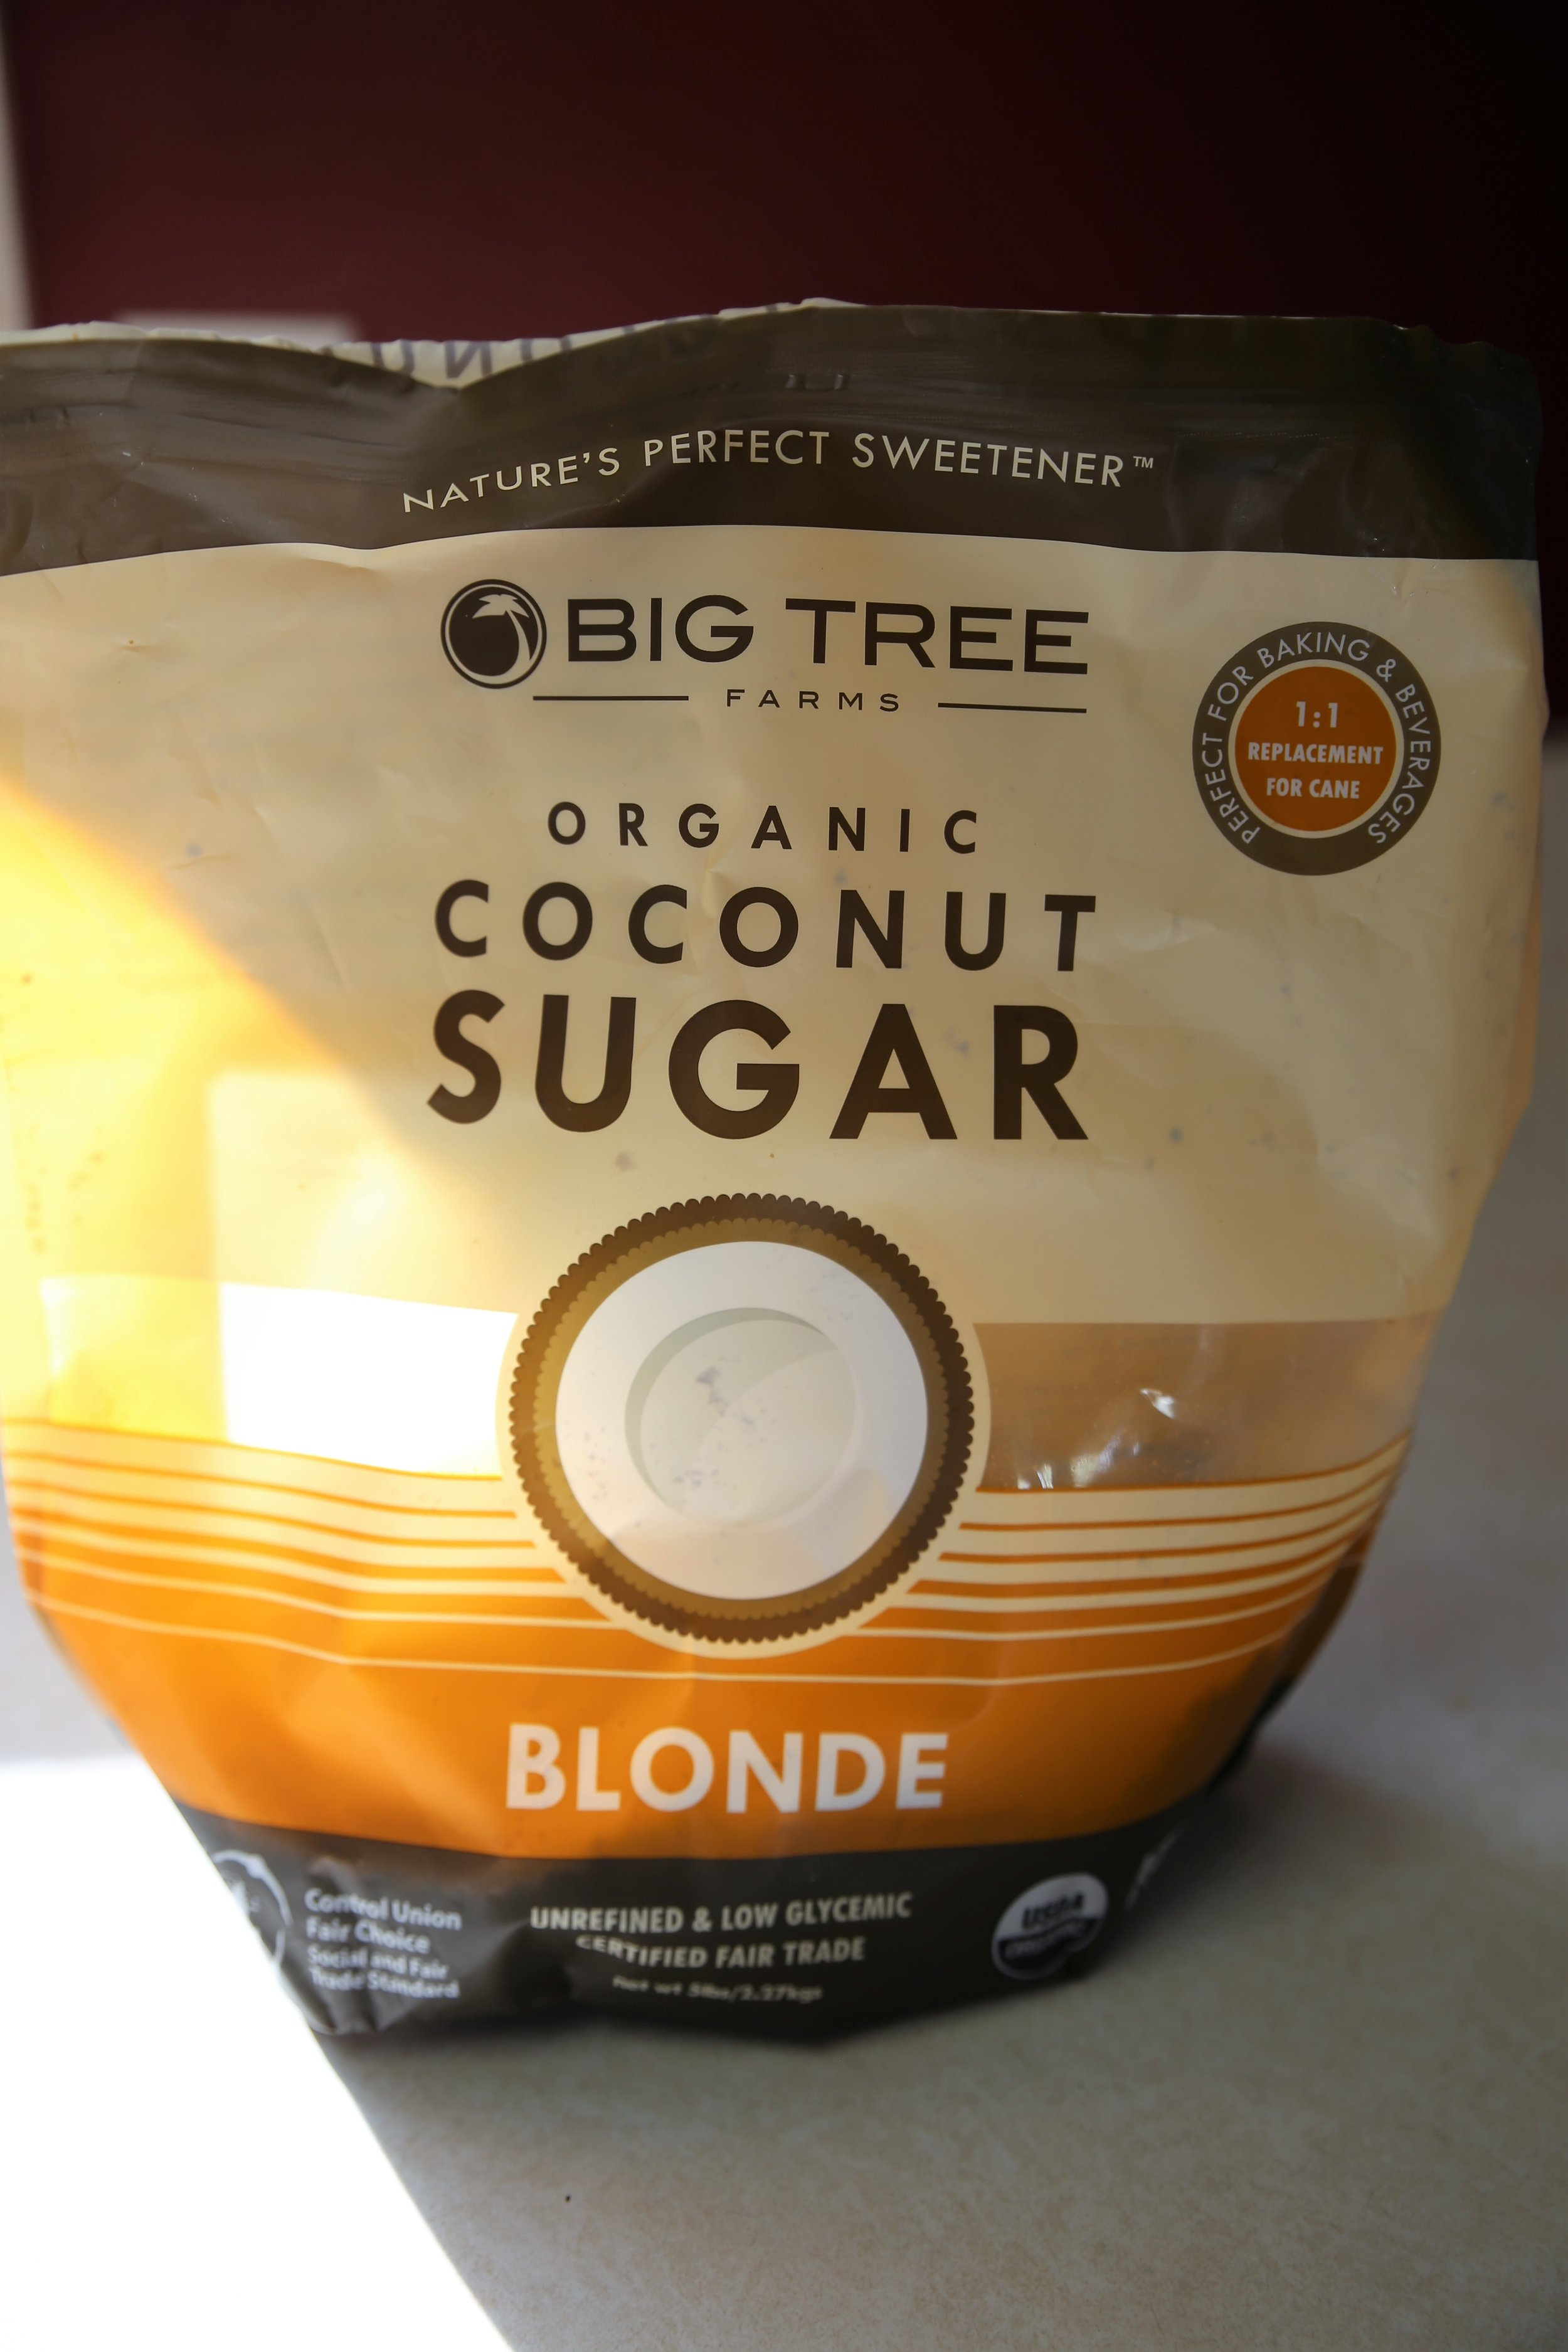 1:1 for regular sugar with hint of molasses taste - So far I've really only found that coconut sugar does not taste good in lemonade. For all of my baking needs, this is my go to sugar.Where to buy: Amazon.com, Whole Foods, Costco, Trader Joes, Fresh Thyme and many other local stores